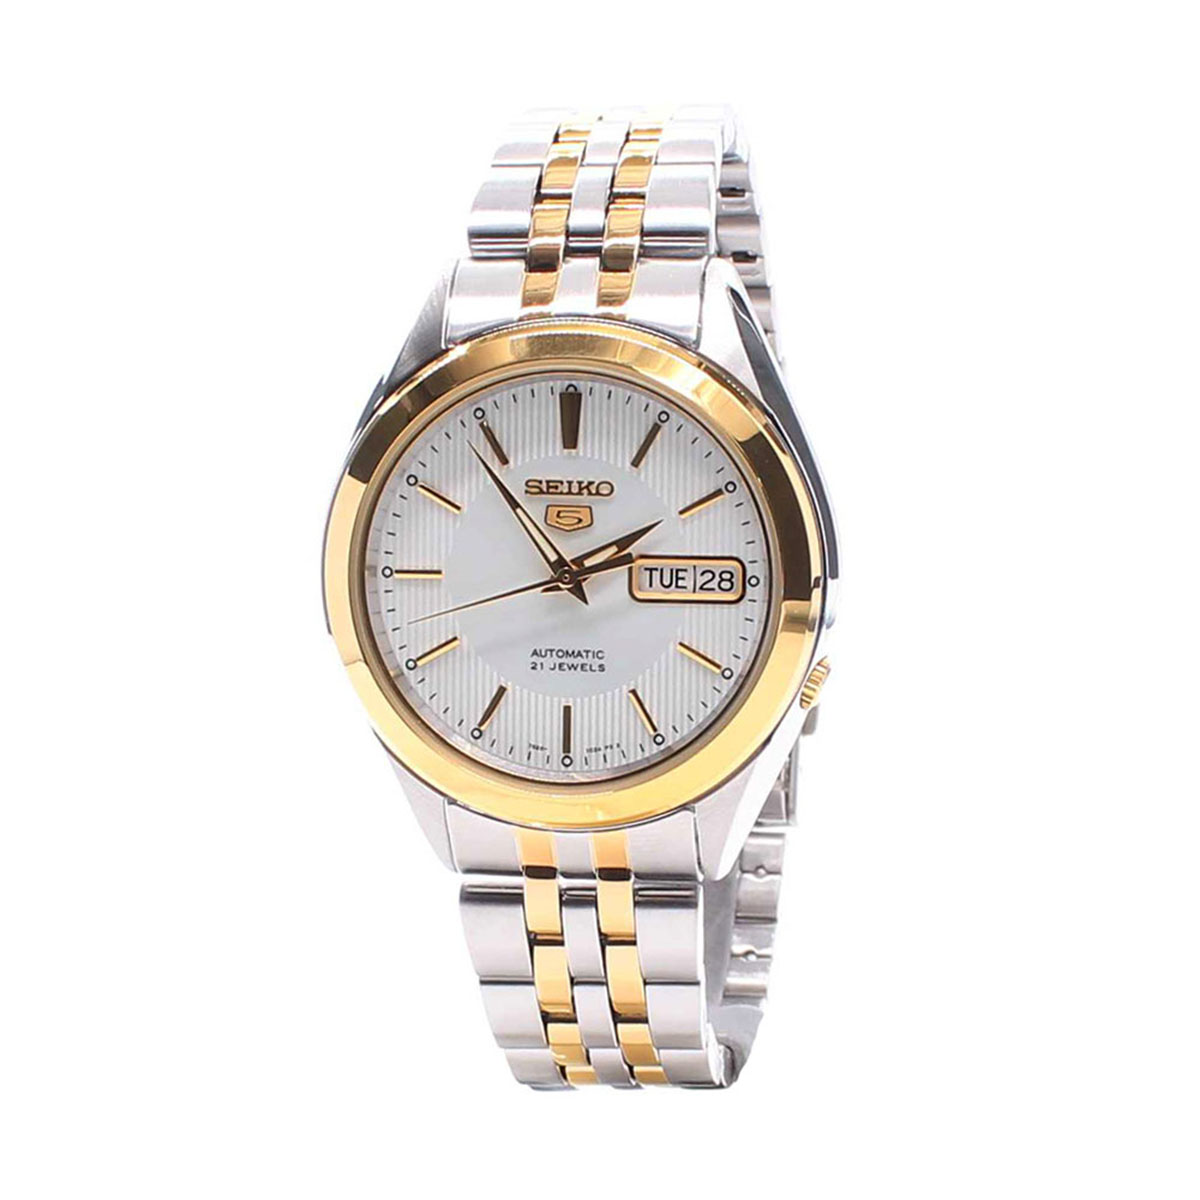 Flash Sale Seiko 5 - SNKL24K1 - Automatic 30M - Jam Tangan Pria